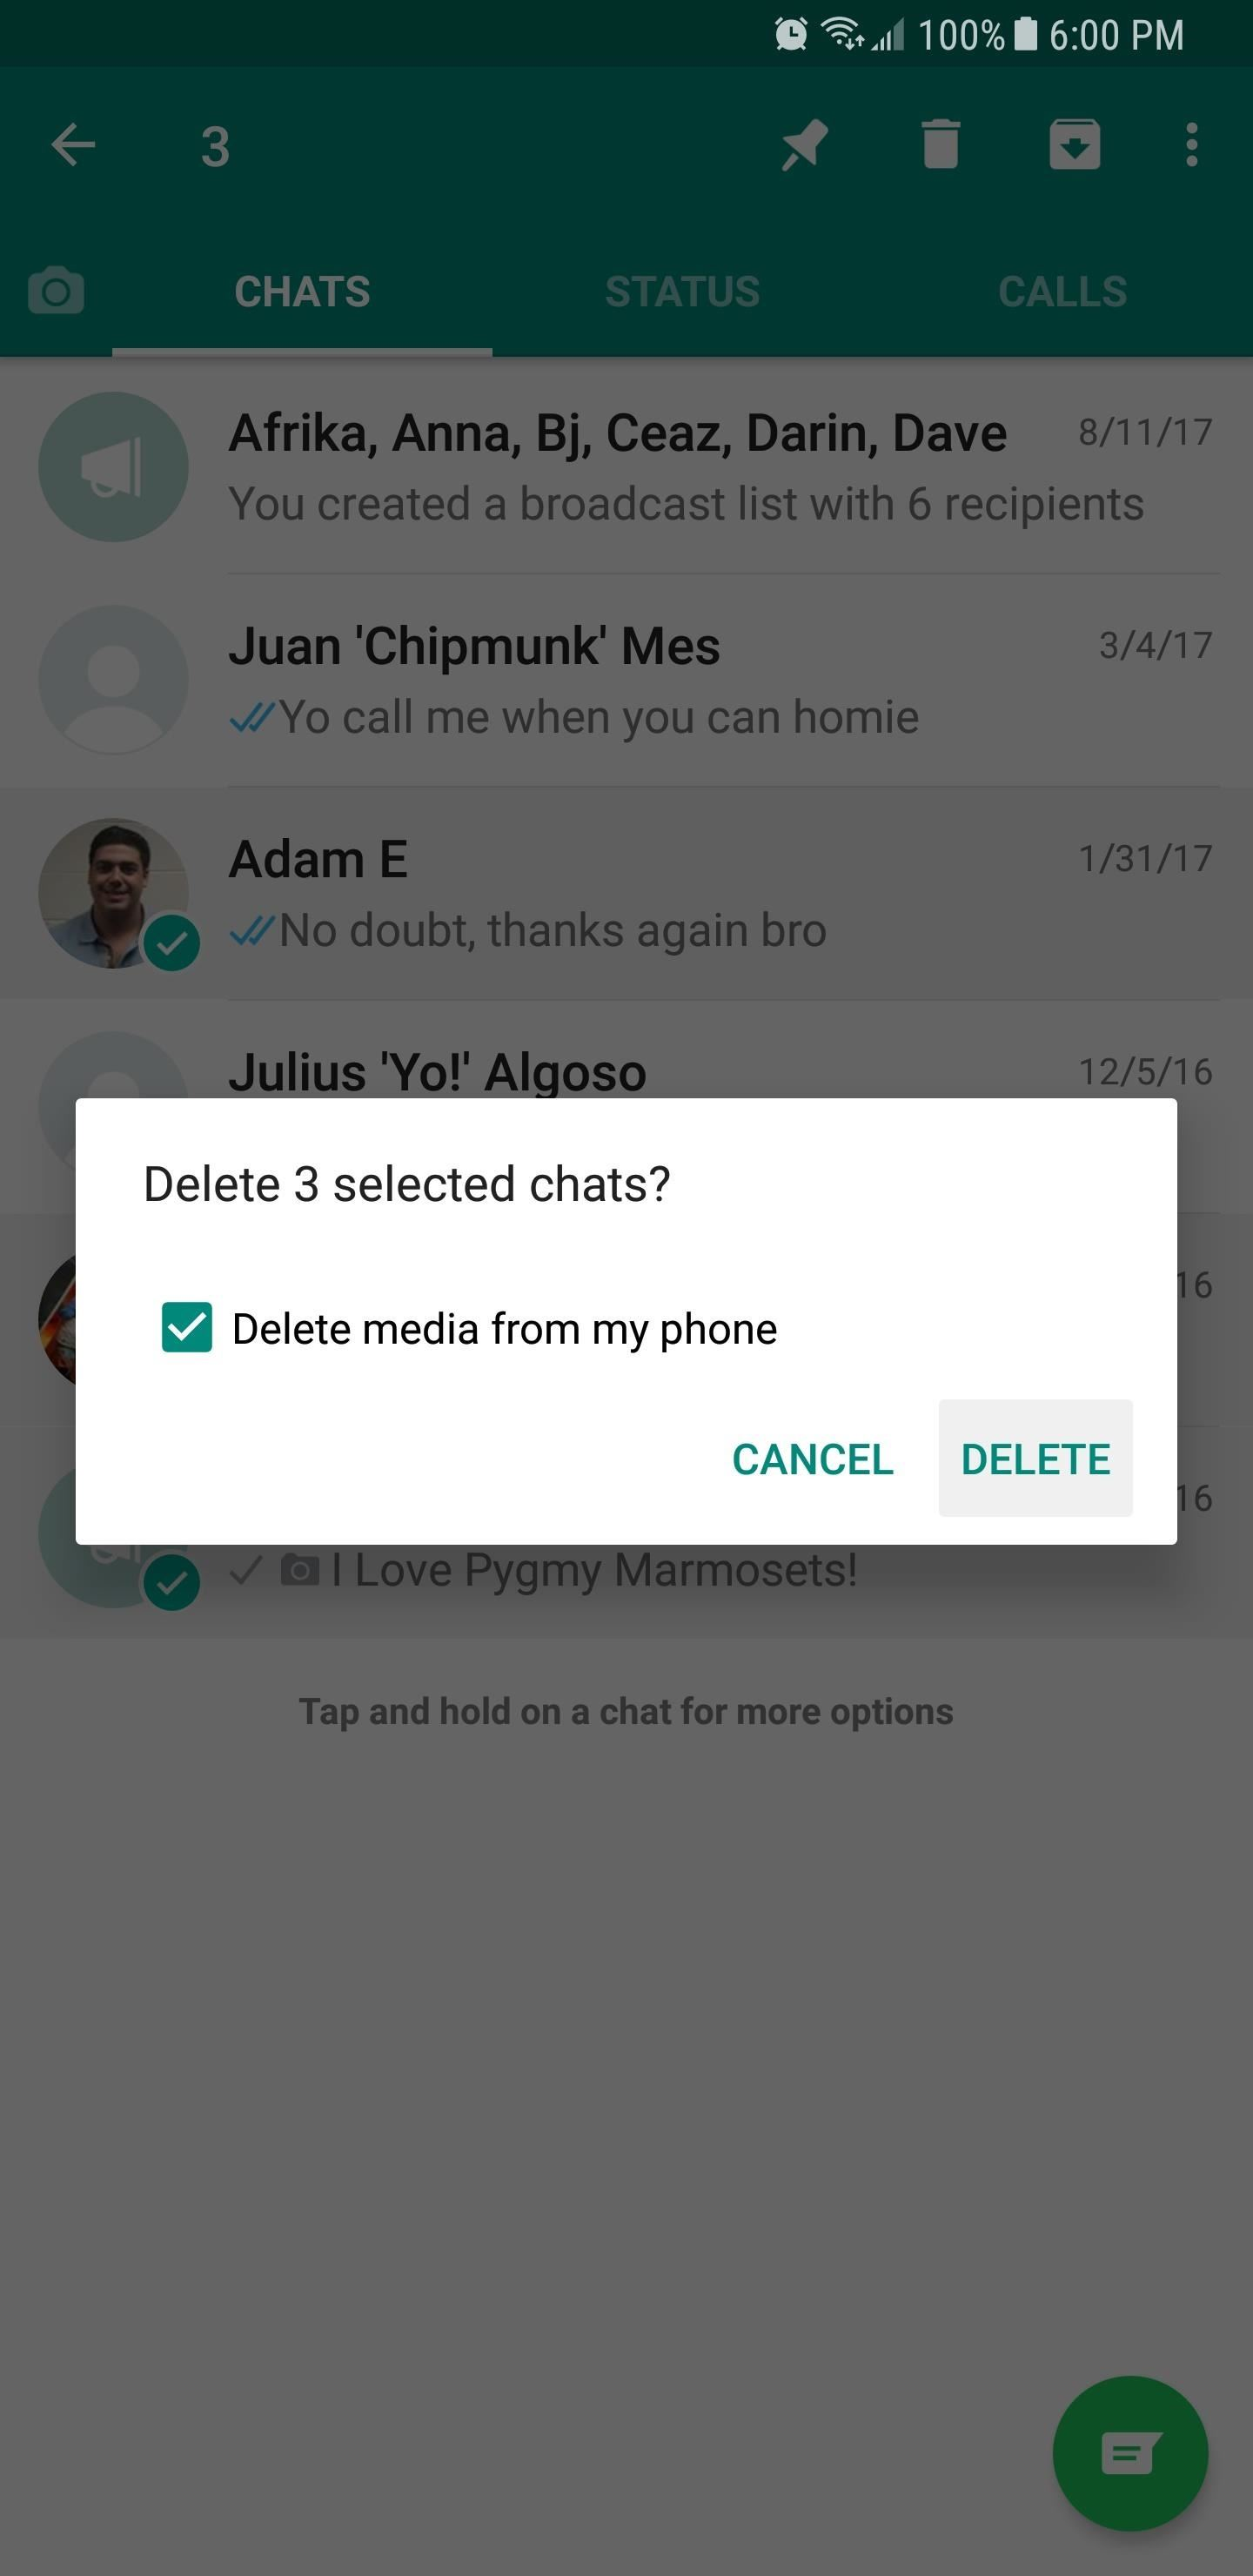 WhatsApp 101: How to Delete Individual & Group Chats on Your iPhone or Android